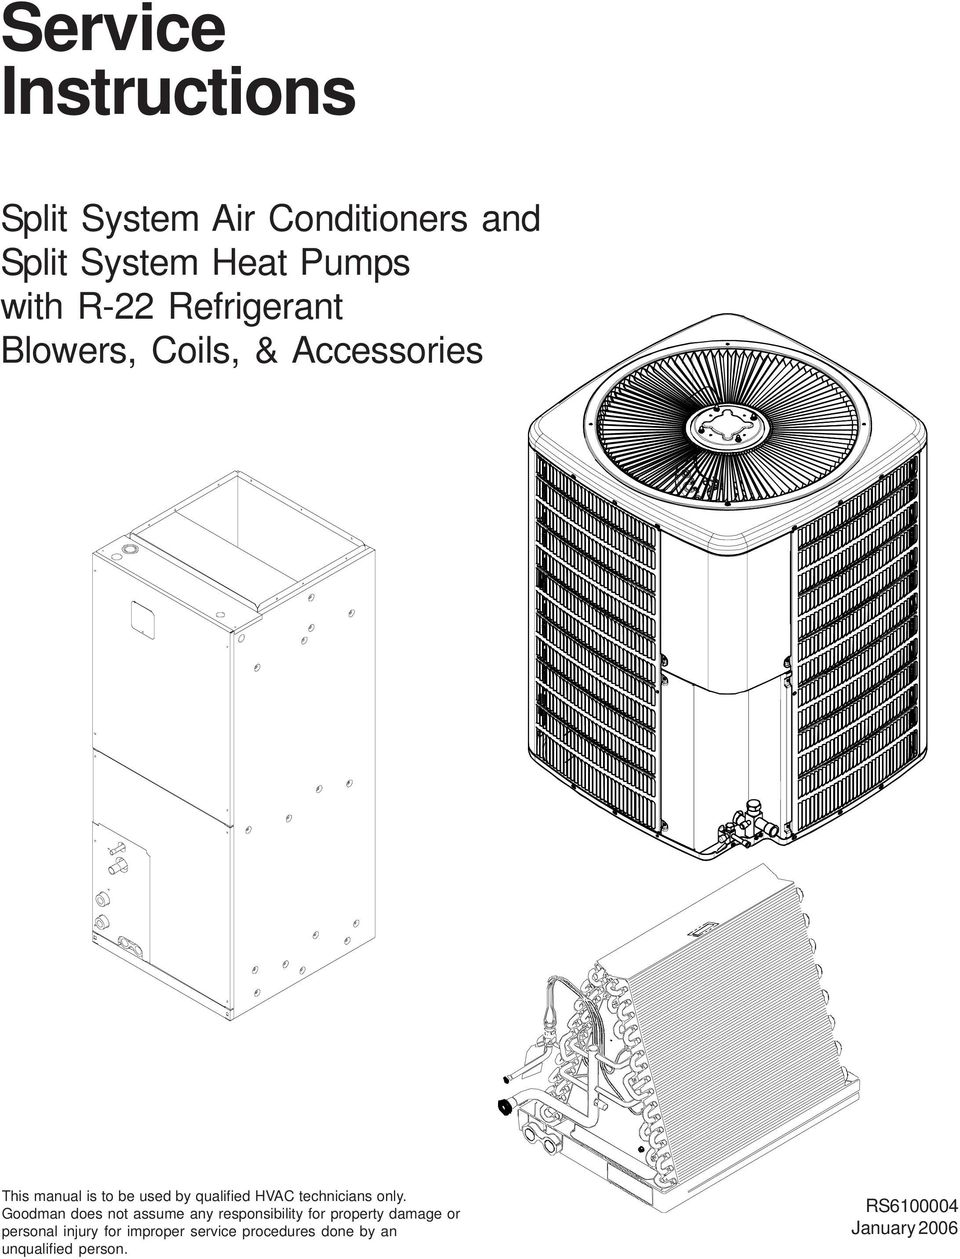 Service Instructions. Split System Air Conditioners and Split System ...